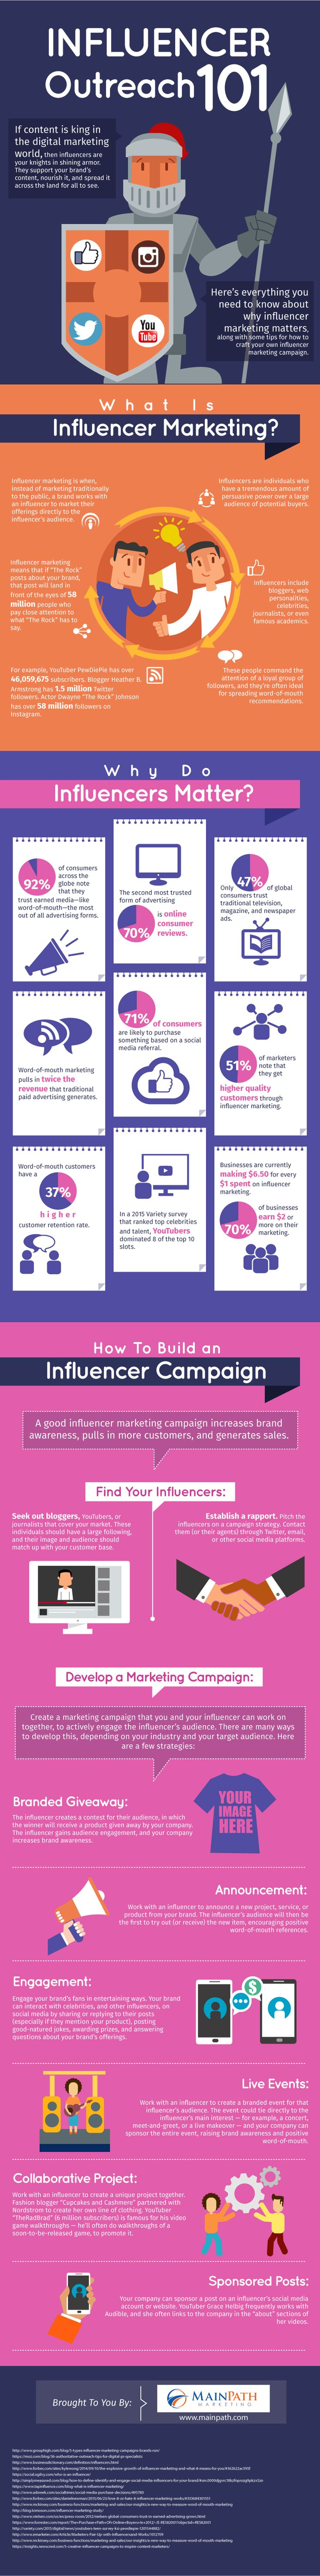 #Influencer Outreach 101 - Do you fancy an infographic? There are a lot of them online, but if you want your own please visit http://linfografico.com/en/prices/ Online girano molte infografiche, se ne vuoi realizzare una tutta tua visita http://www.linfografico.com/prezzi/